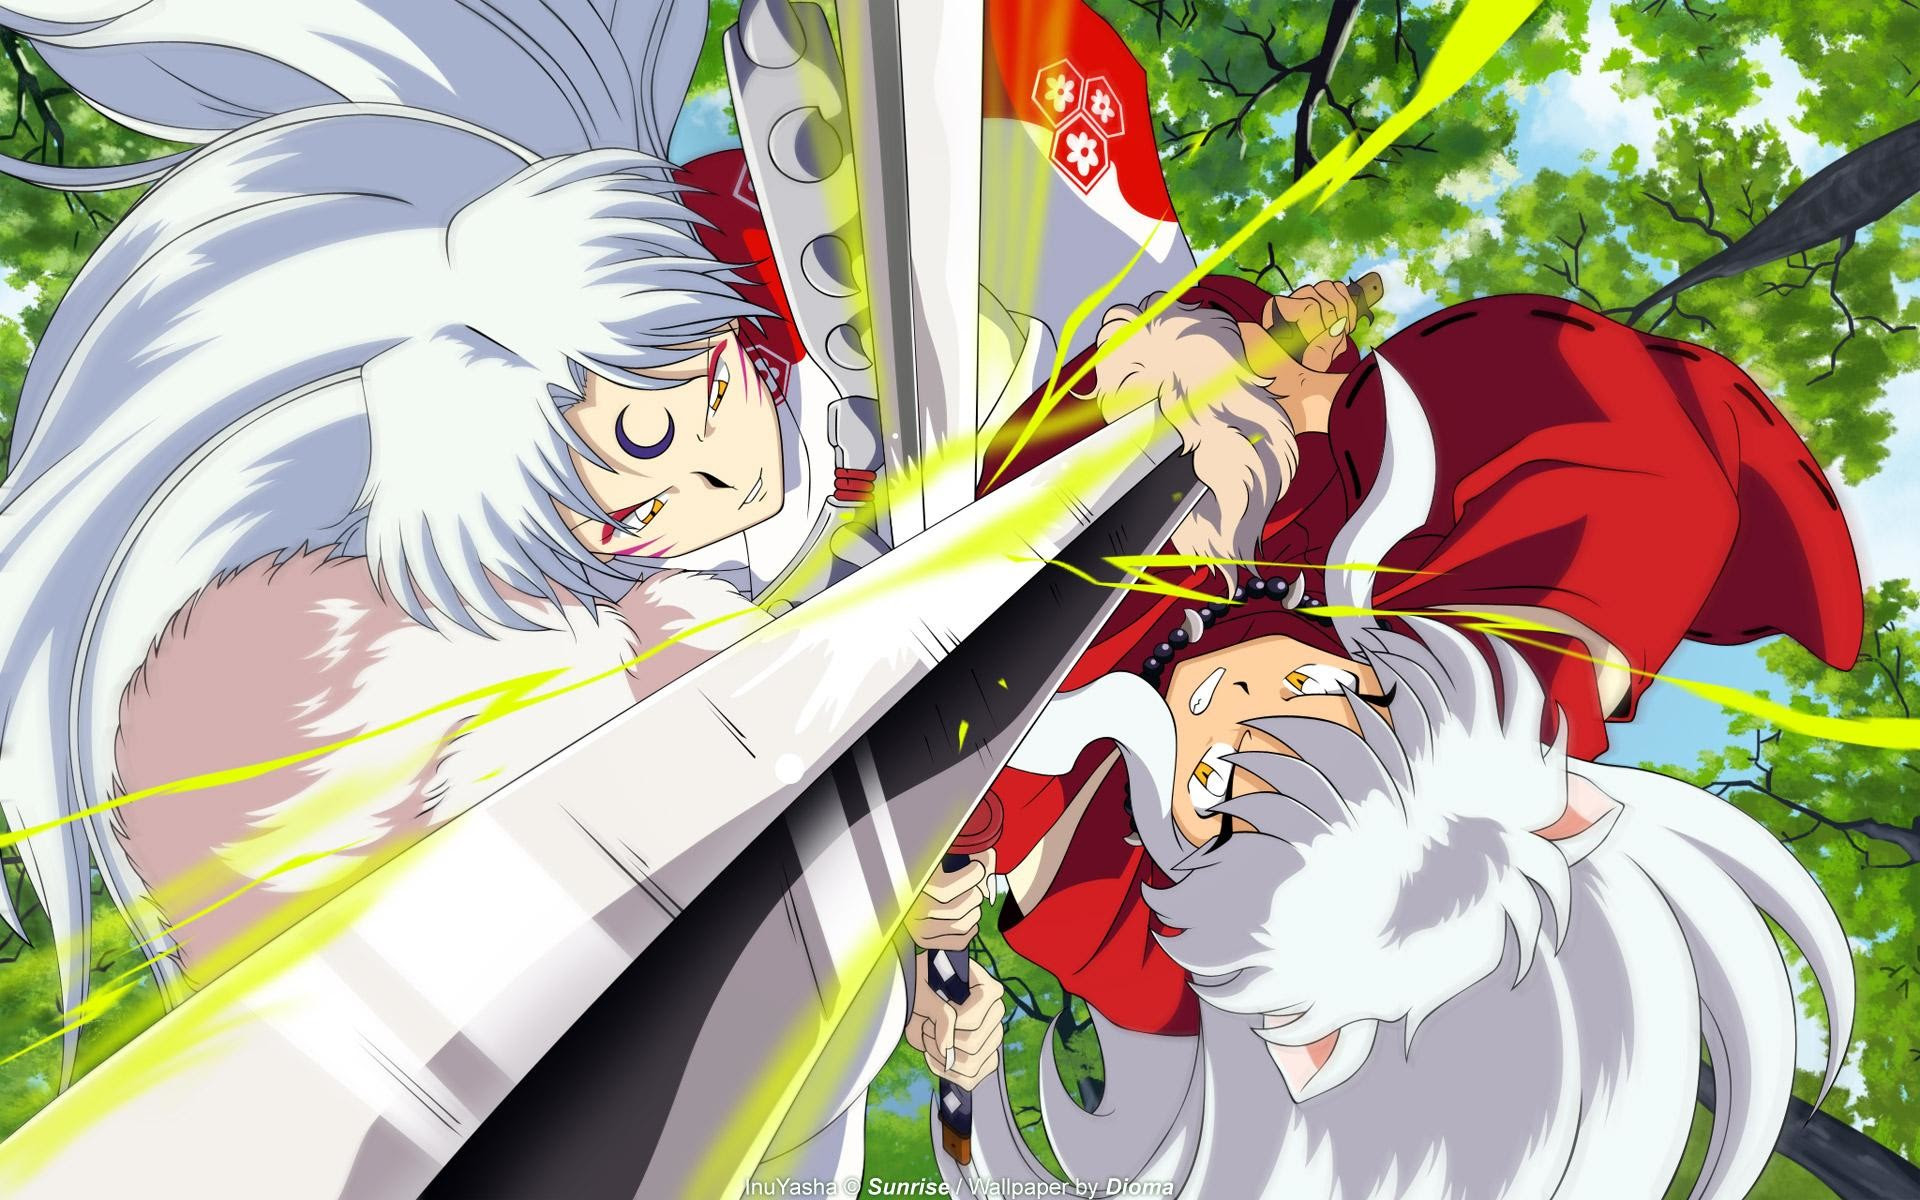 Download 84 Wallpaper Hd Anime Inuyasha HD Paling Keren